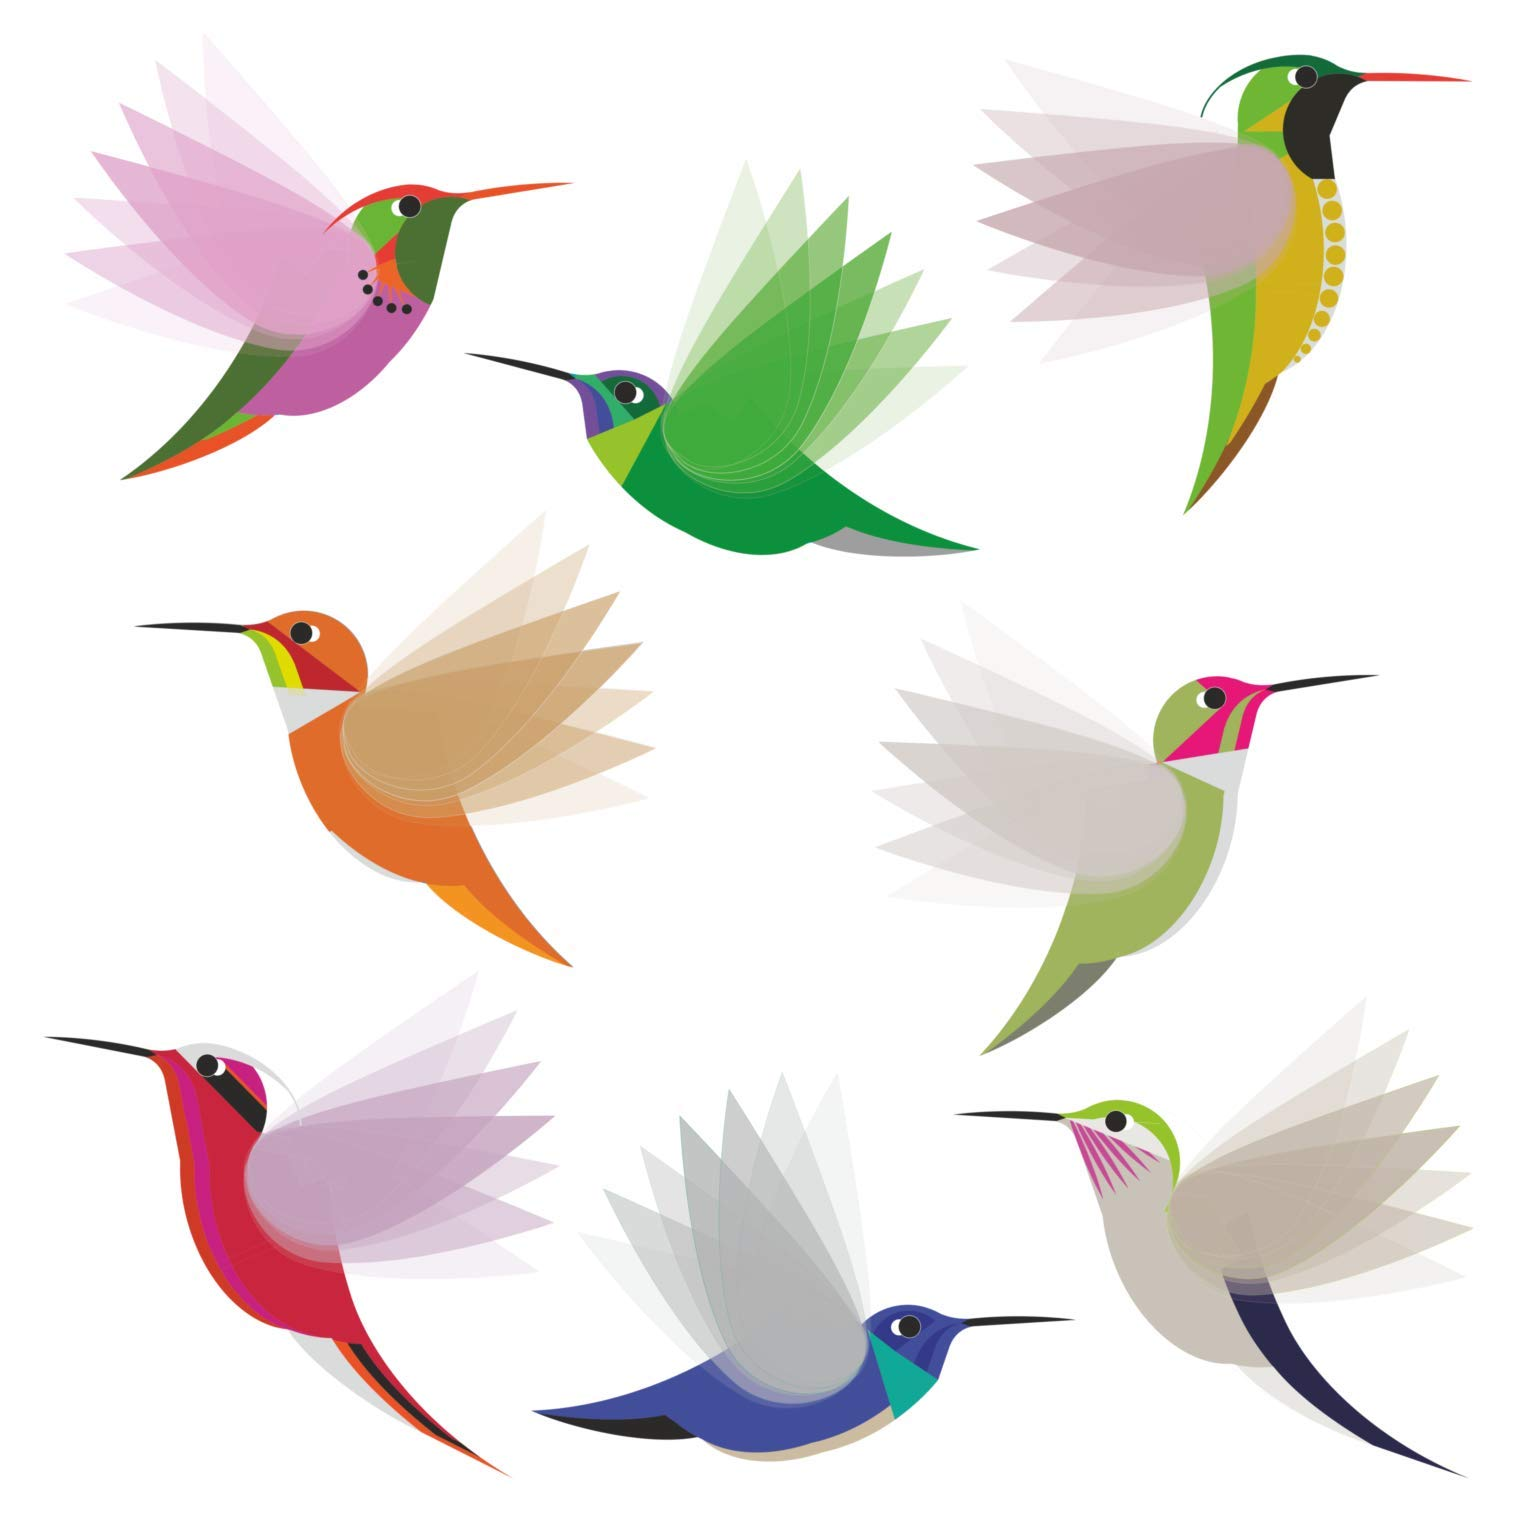 Hummingbirds Window Clings/Decals - Set of 8 Large Illustrated Decorative Glass Static Clings - Helping Prevent Bird Strikes on Windows by Window Flakes